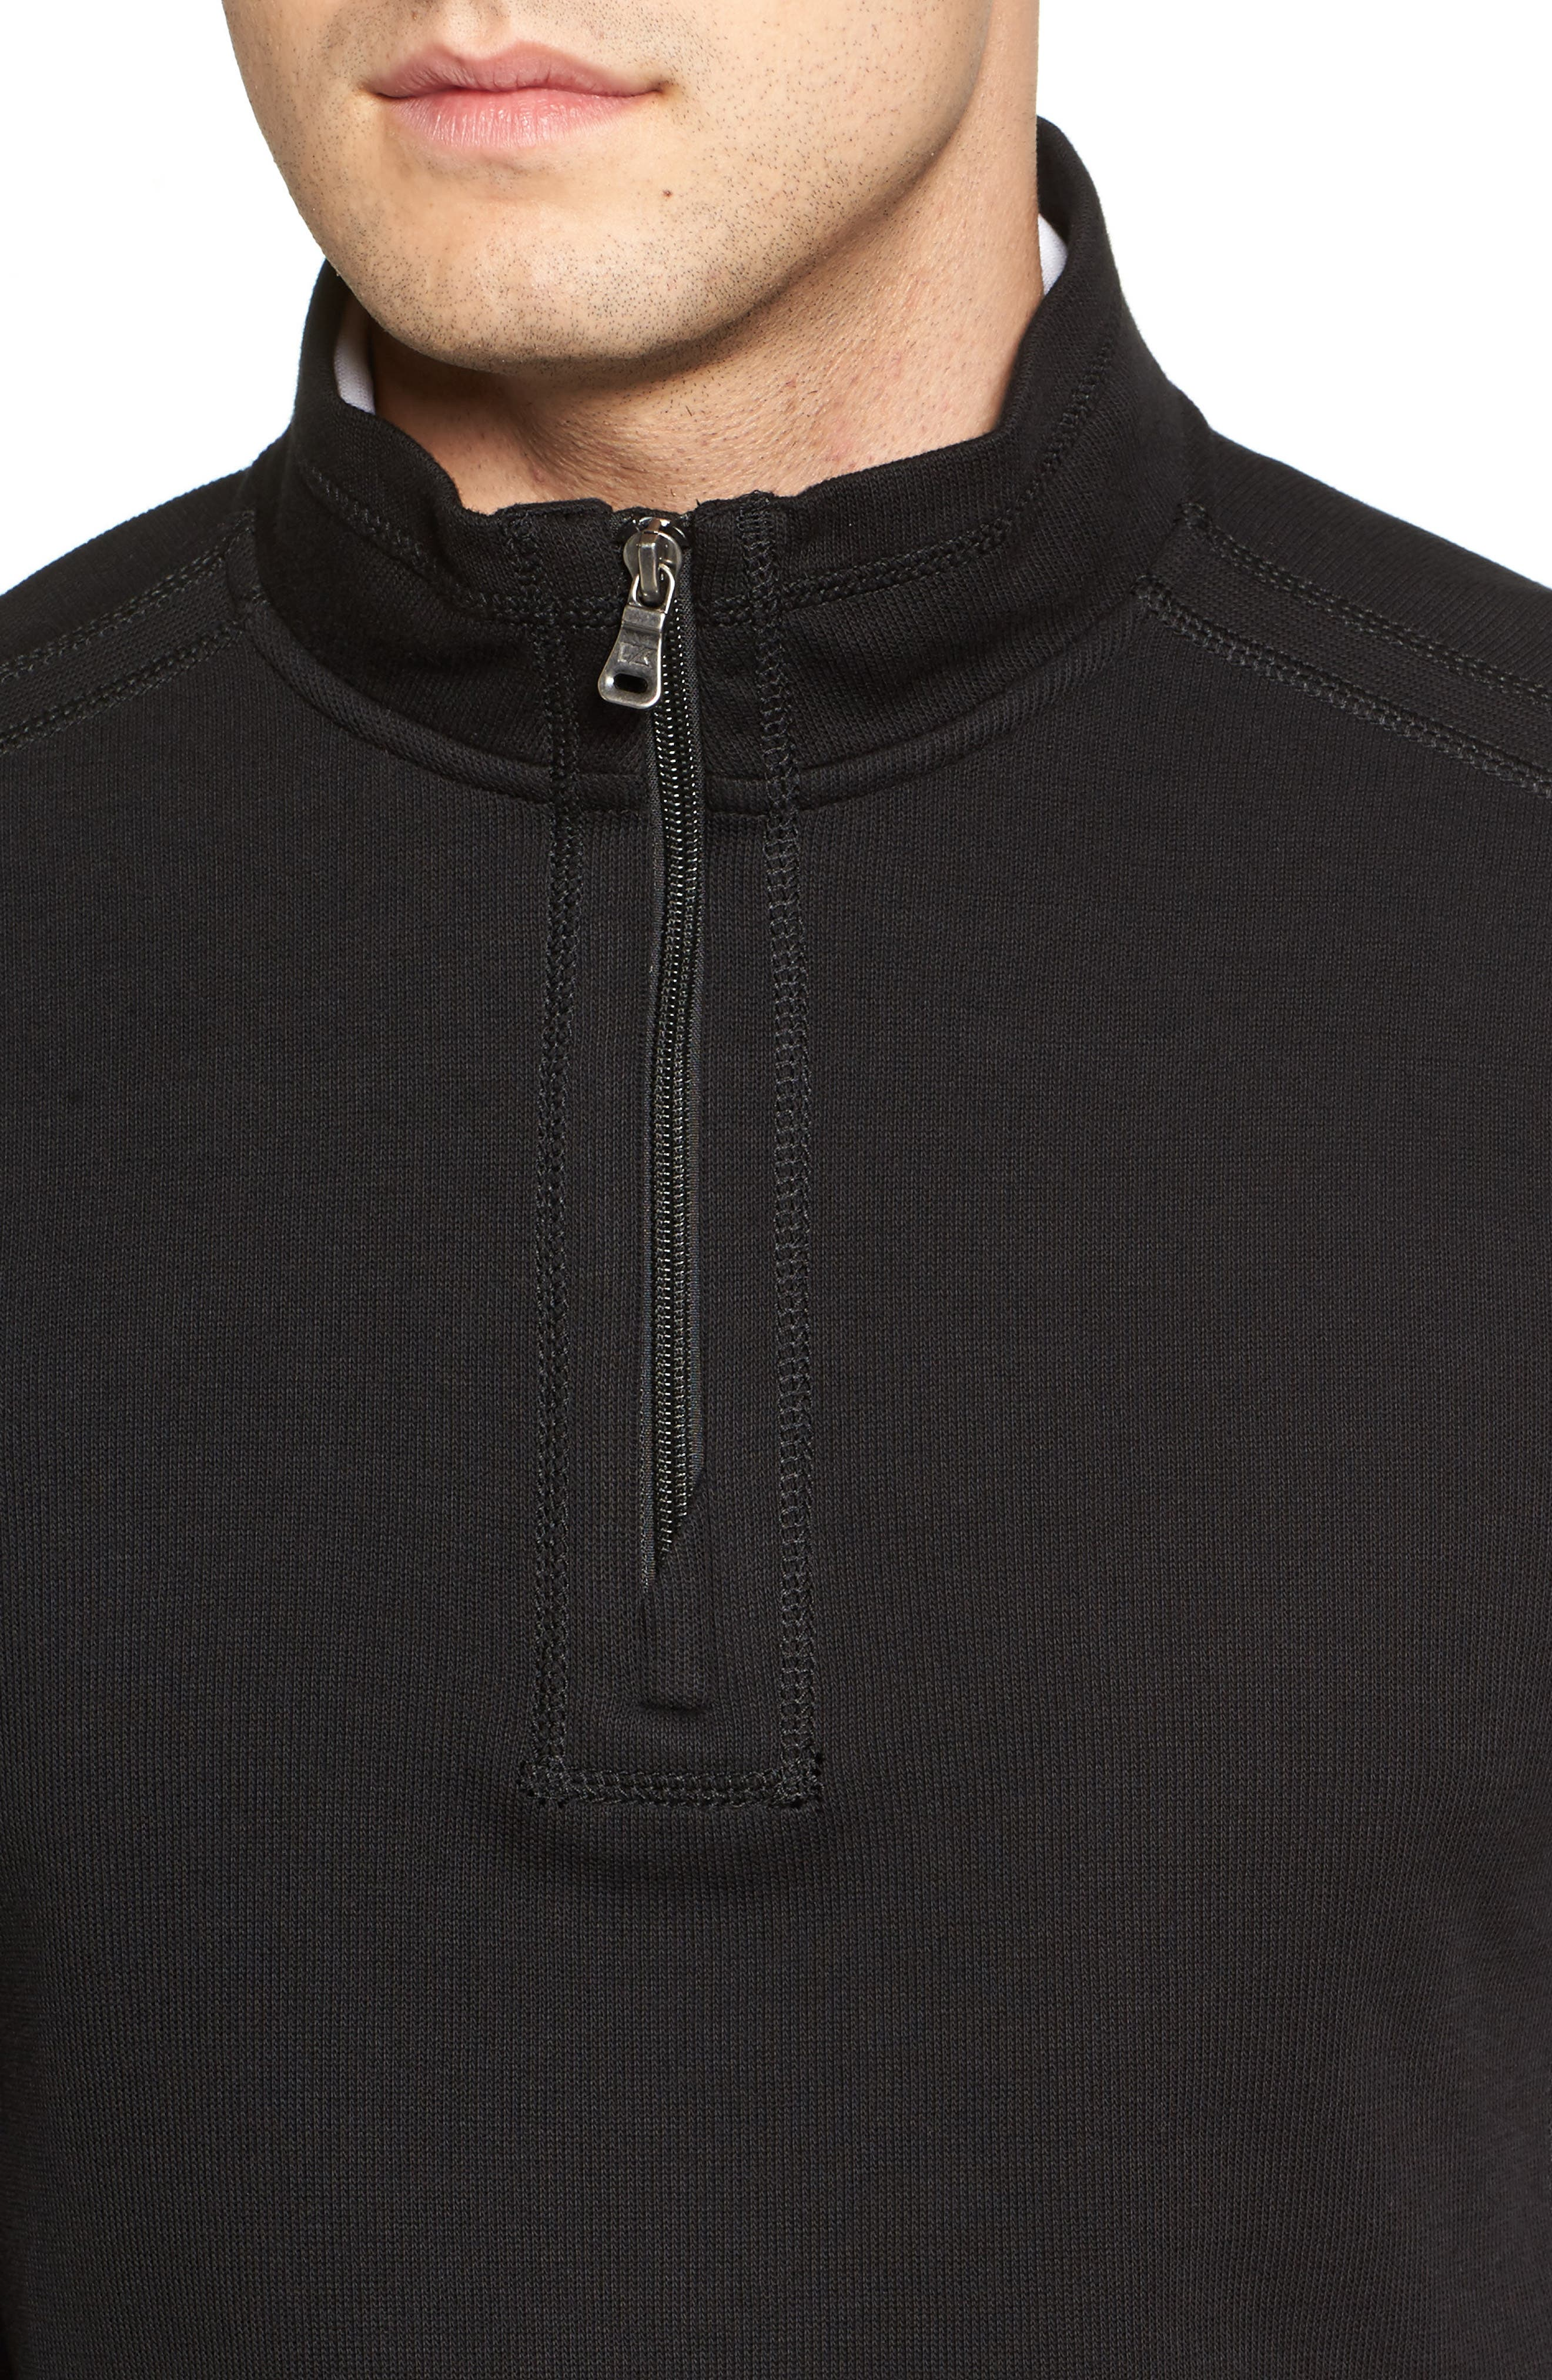 Bayview Quarter Zip Pullover,                             Alternate thumbnail 4, color,                             Black